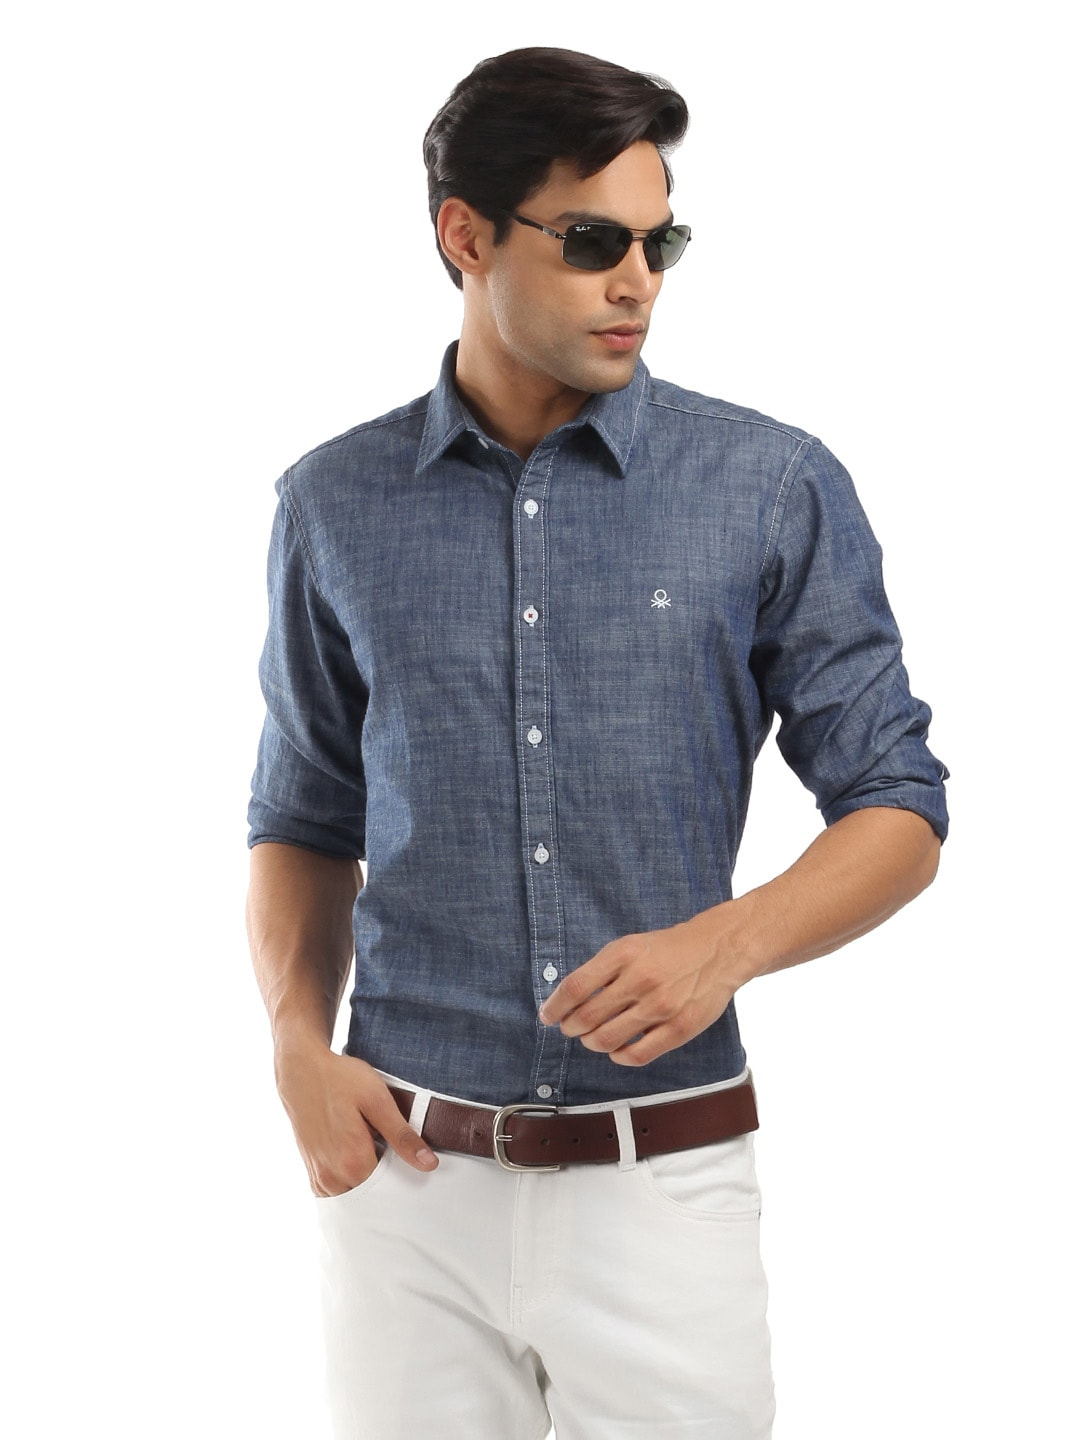 Find great deals on eBay for chambray shirt. Shop with confidence.